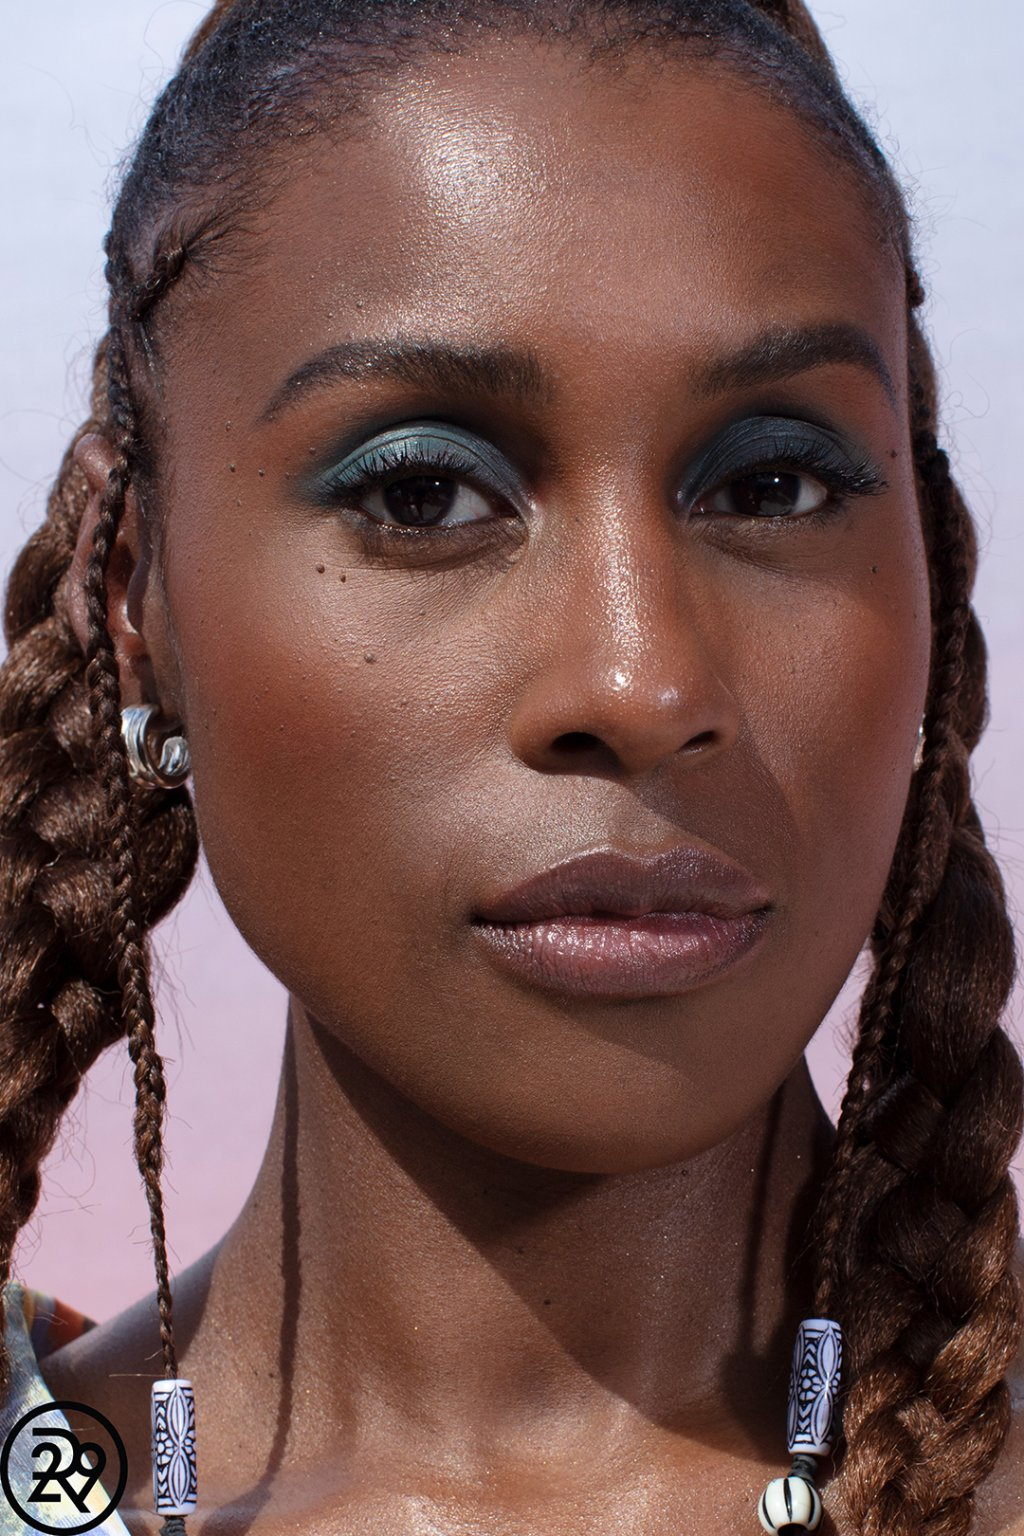 (Un)Cover Story: Issa Rae for Refinery29